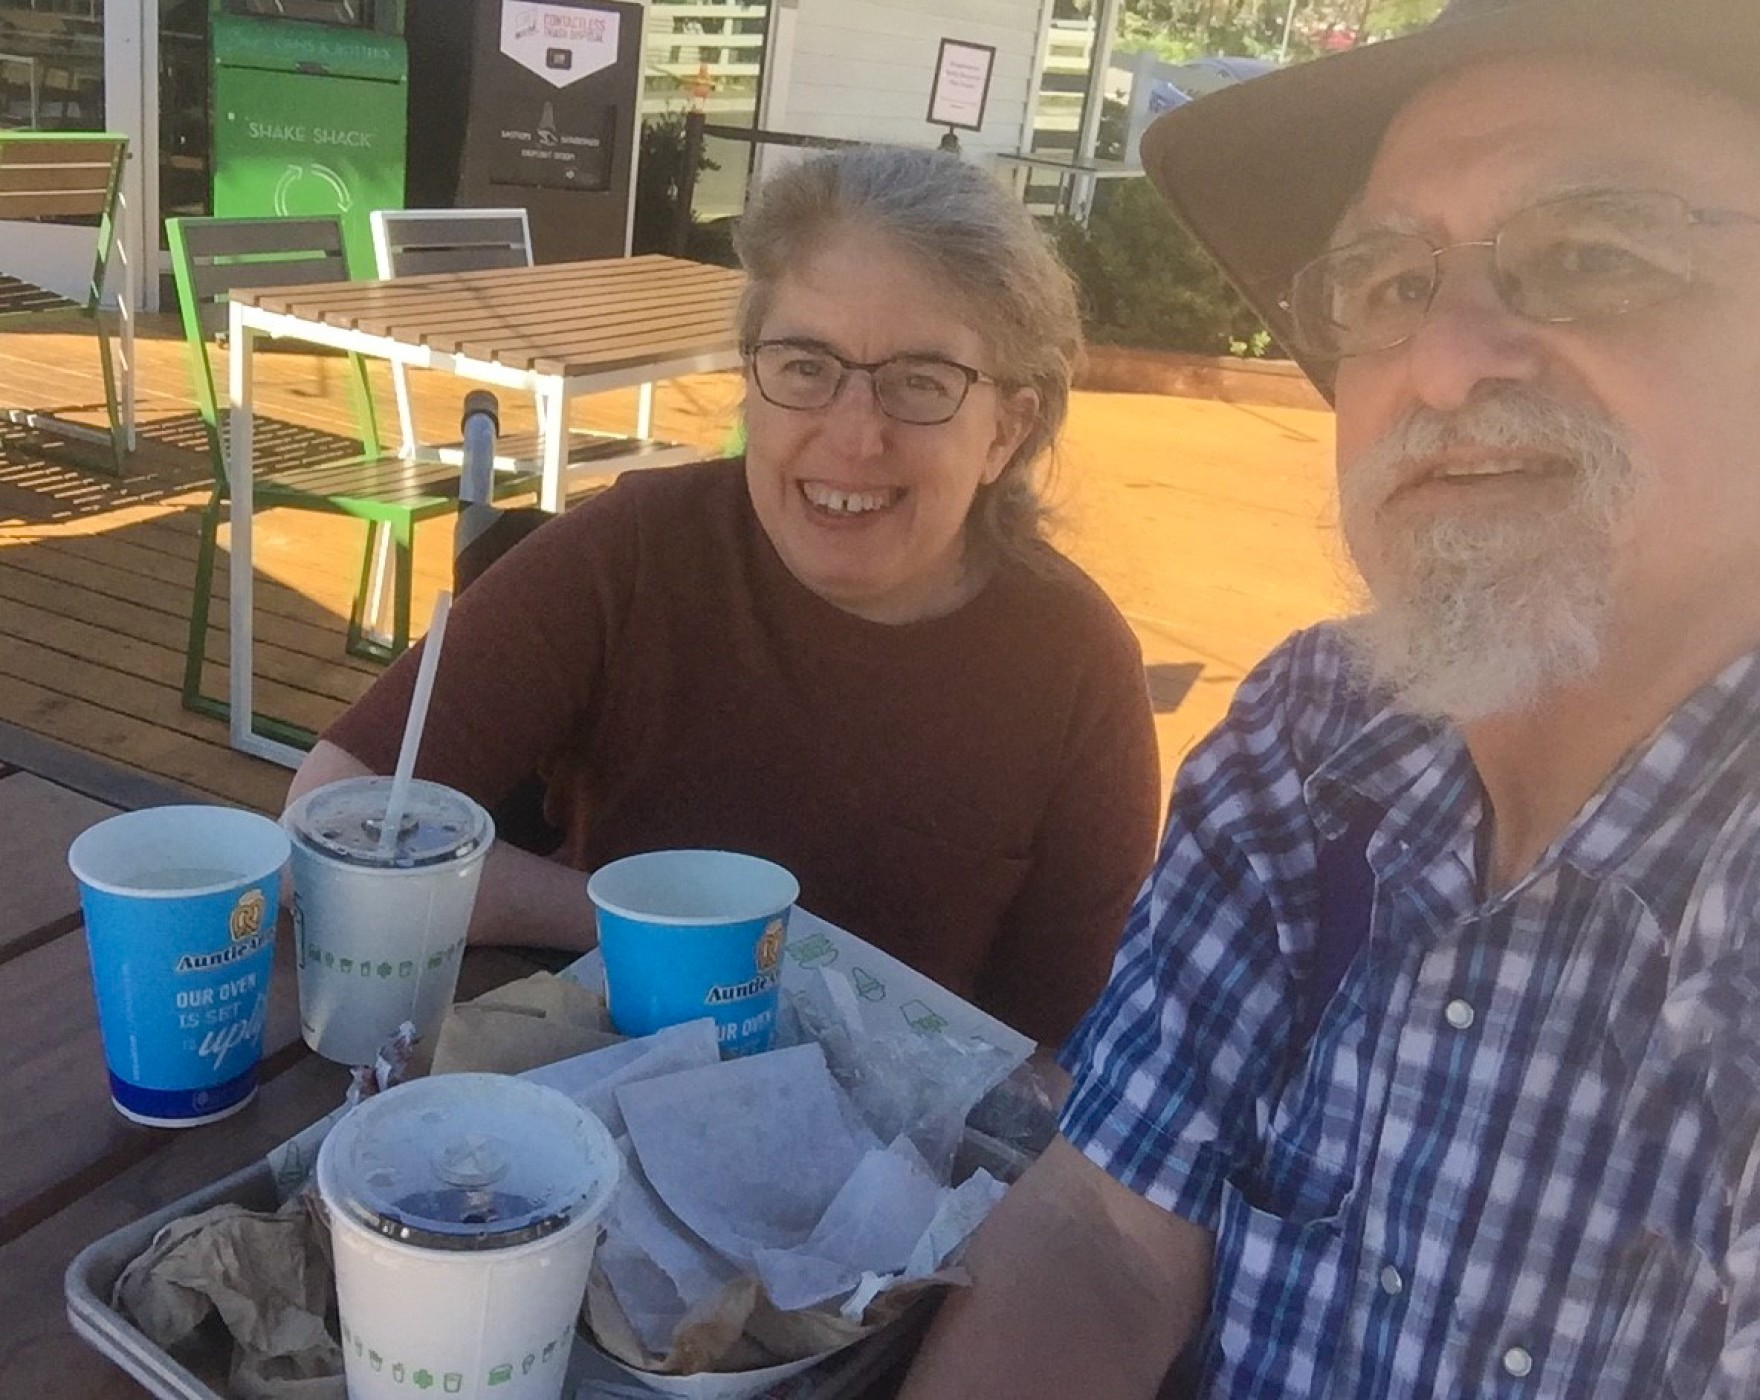 Ingrid and Ken are sitting next to each other, smiling, and looking into the camera. Ingrid is wearing a red shirt and Ken is wearing a blue checkered shirt. On the table are food trays, empty wrappers, and drink cups.